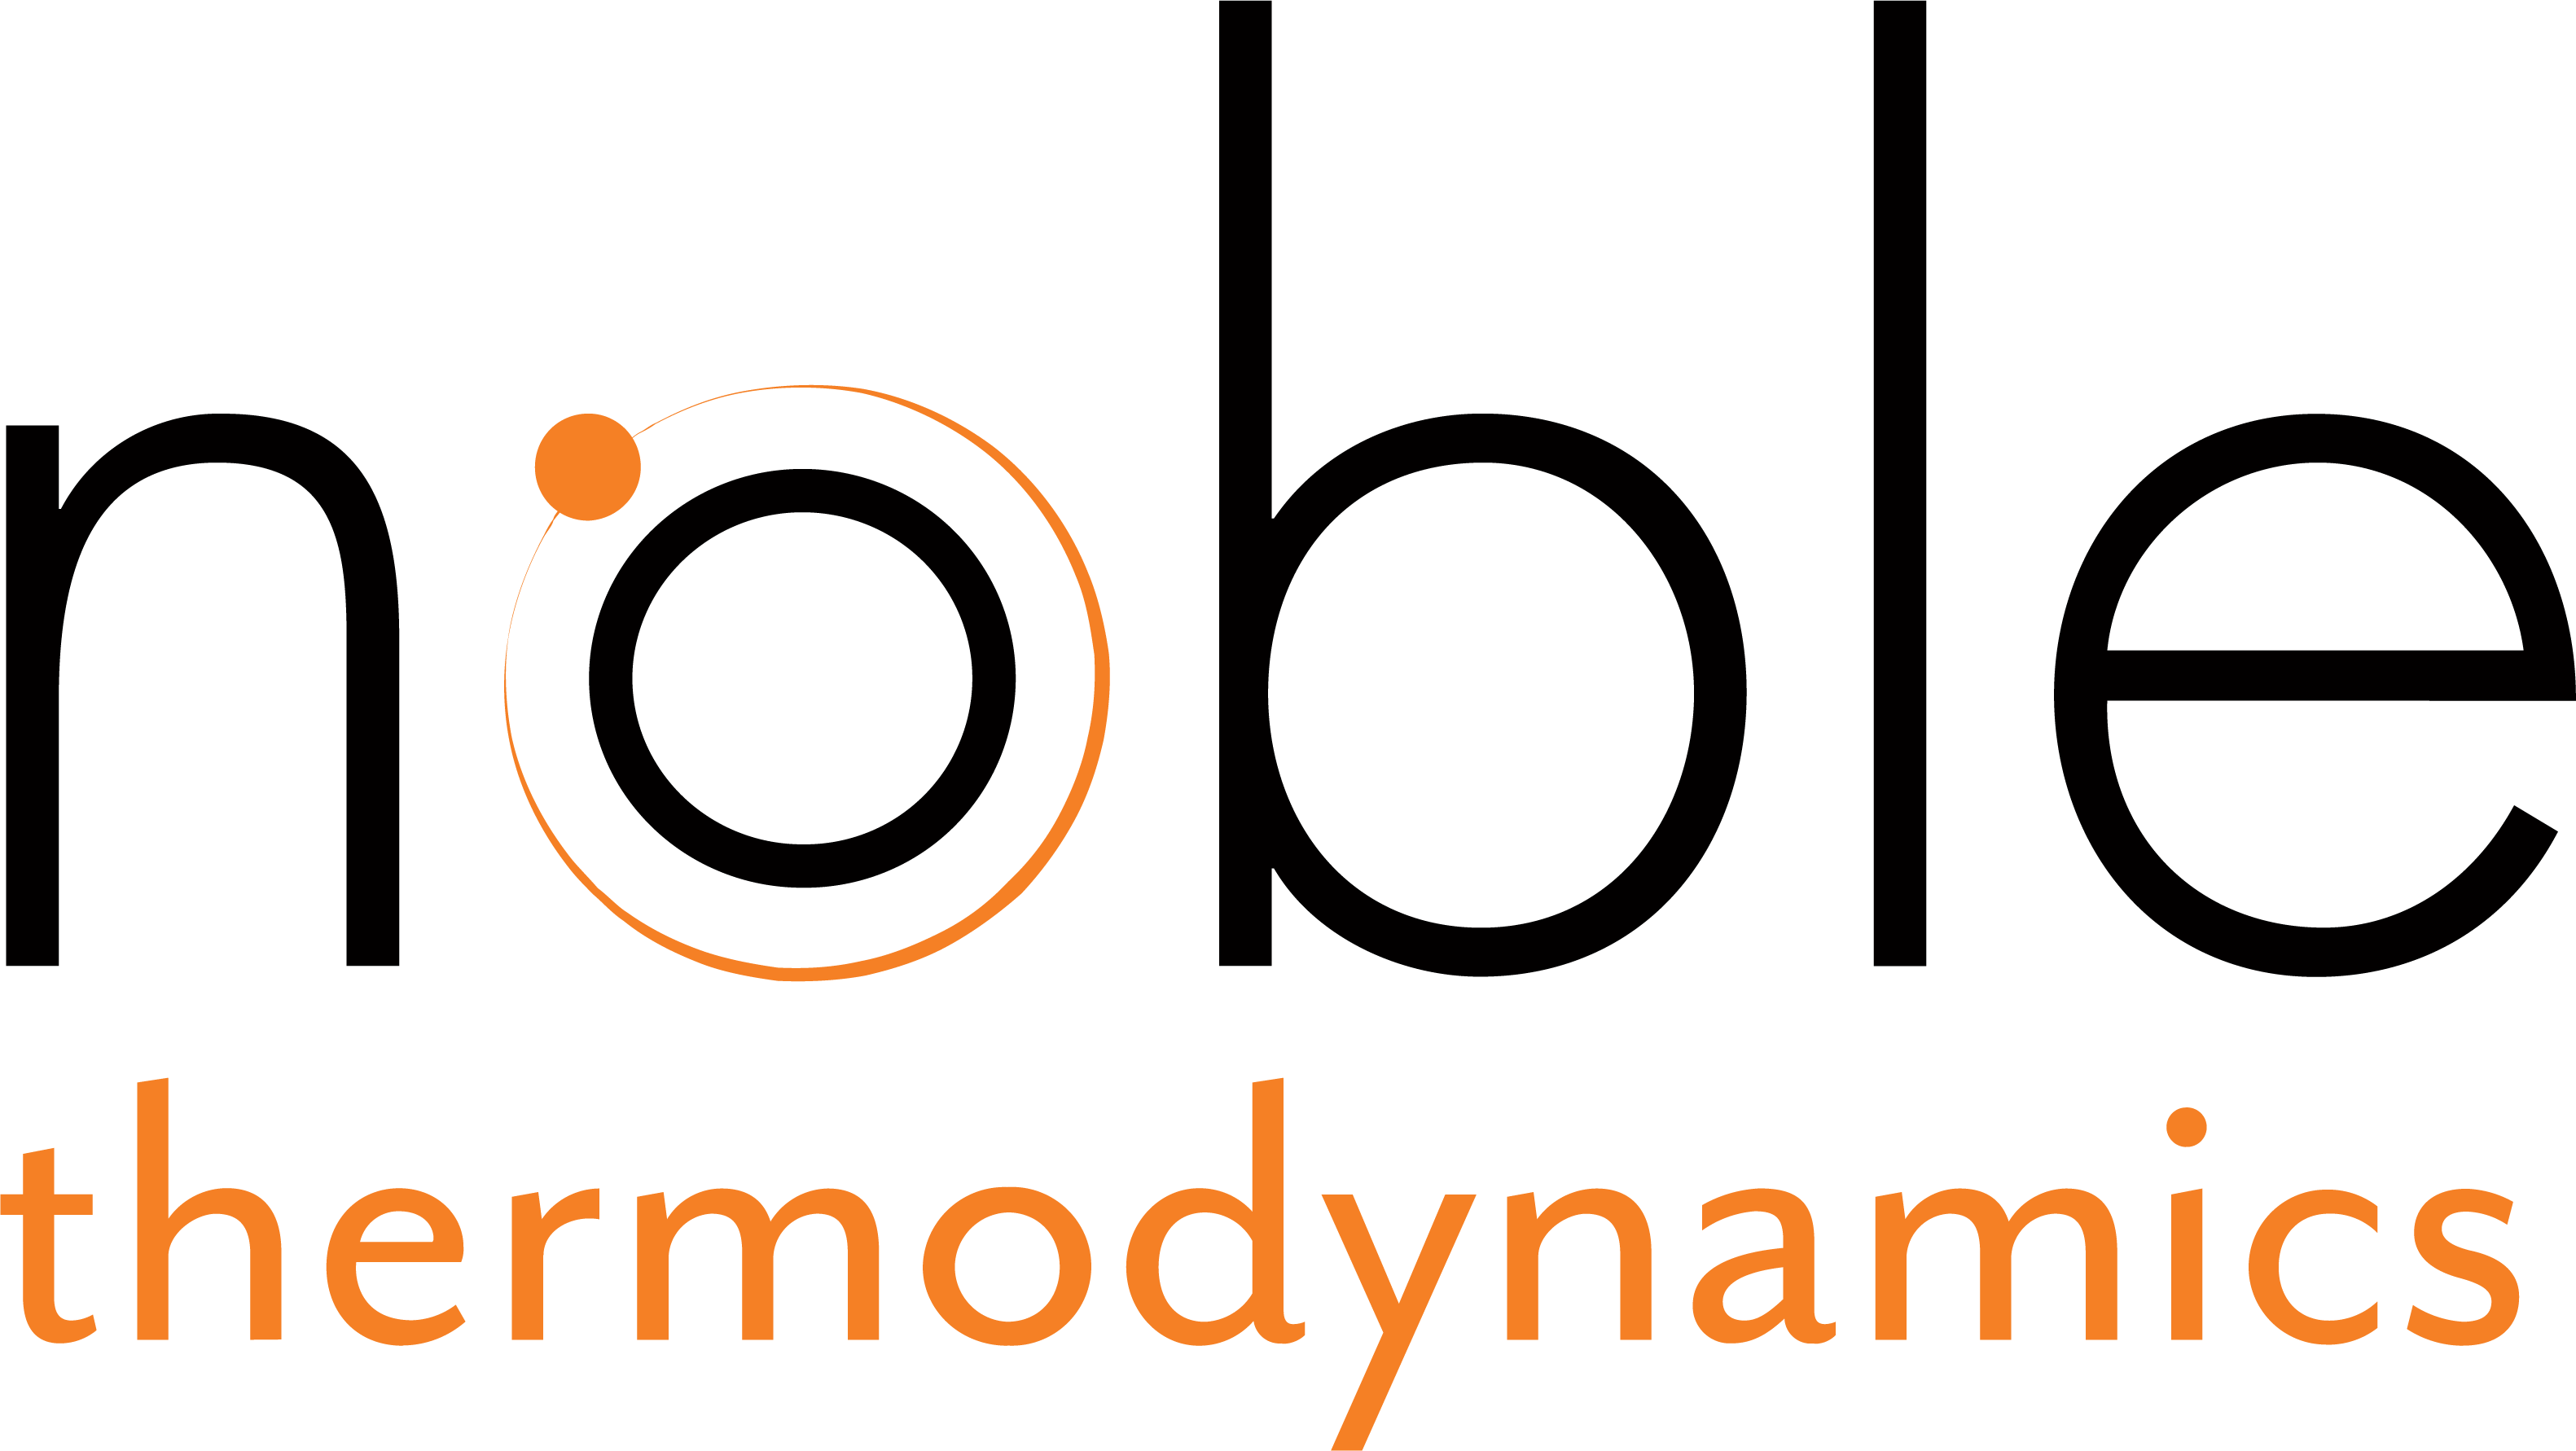 Noble Thermodynamic Systems